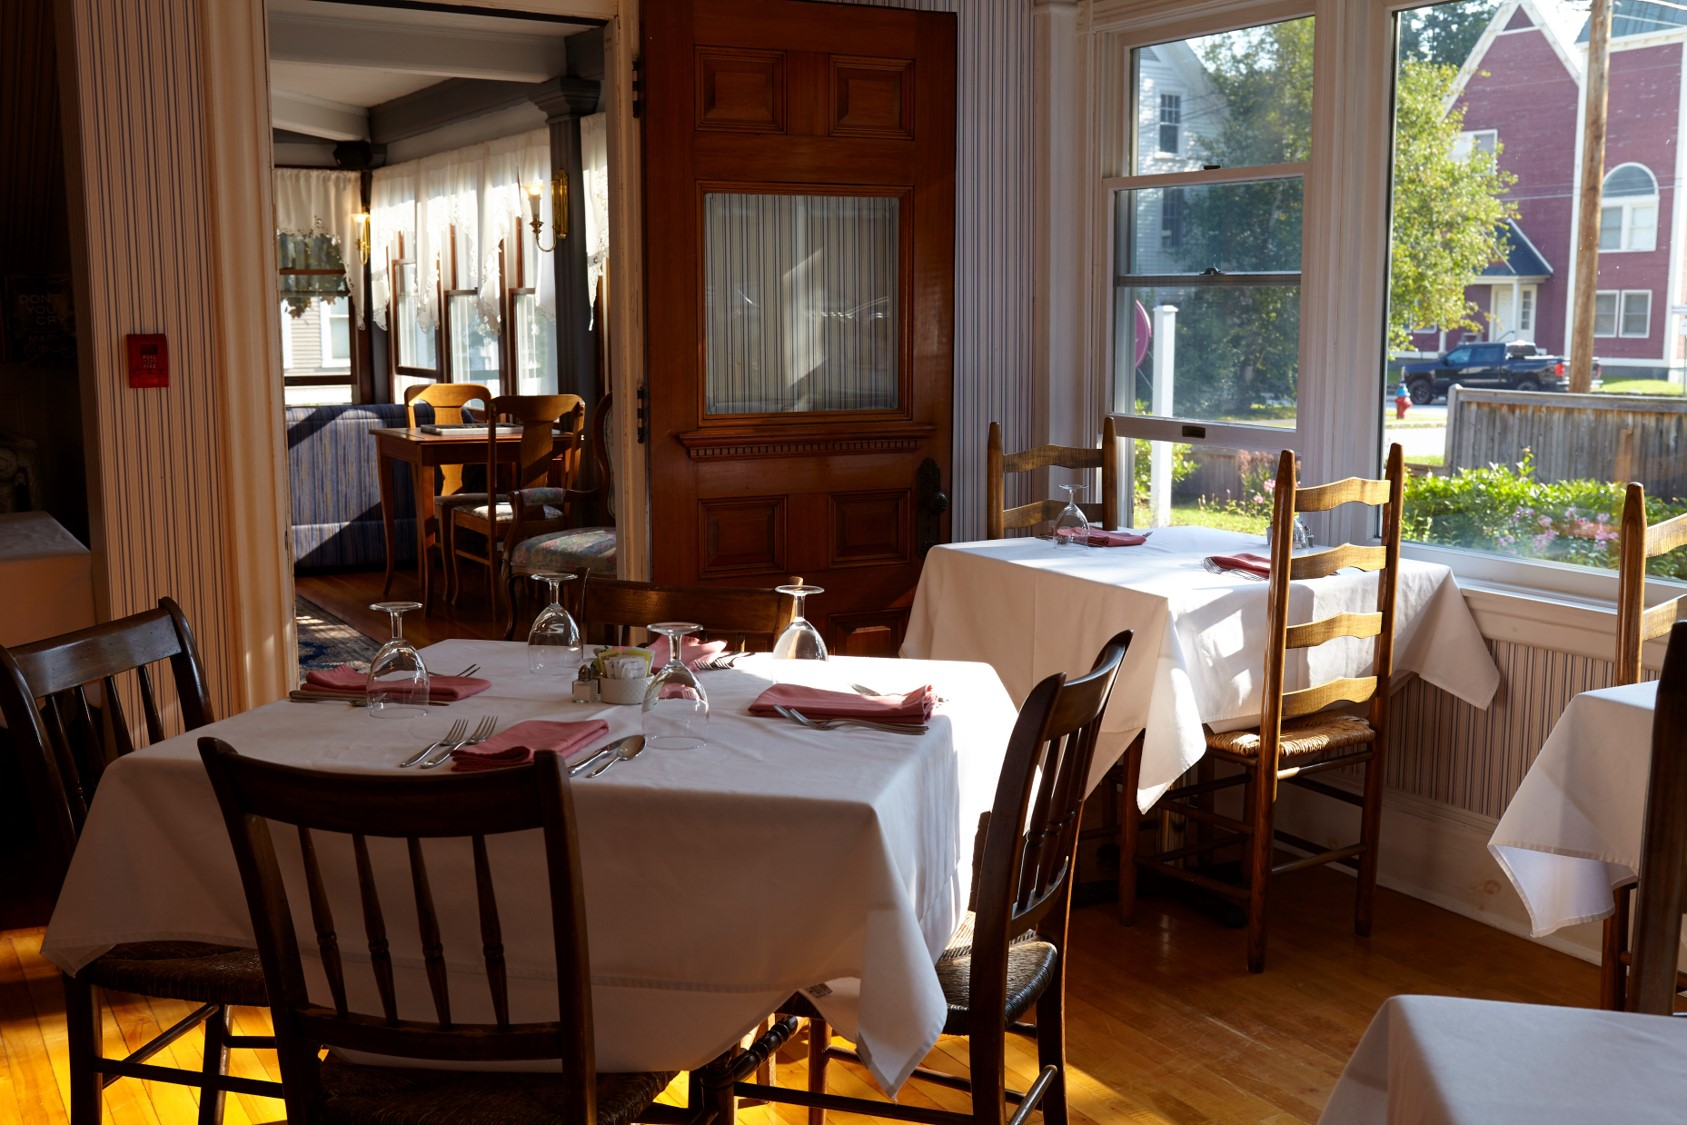 Breakfast in the Grand Dining Room is always a relaxing, gourmet affair.